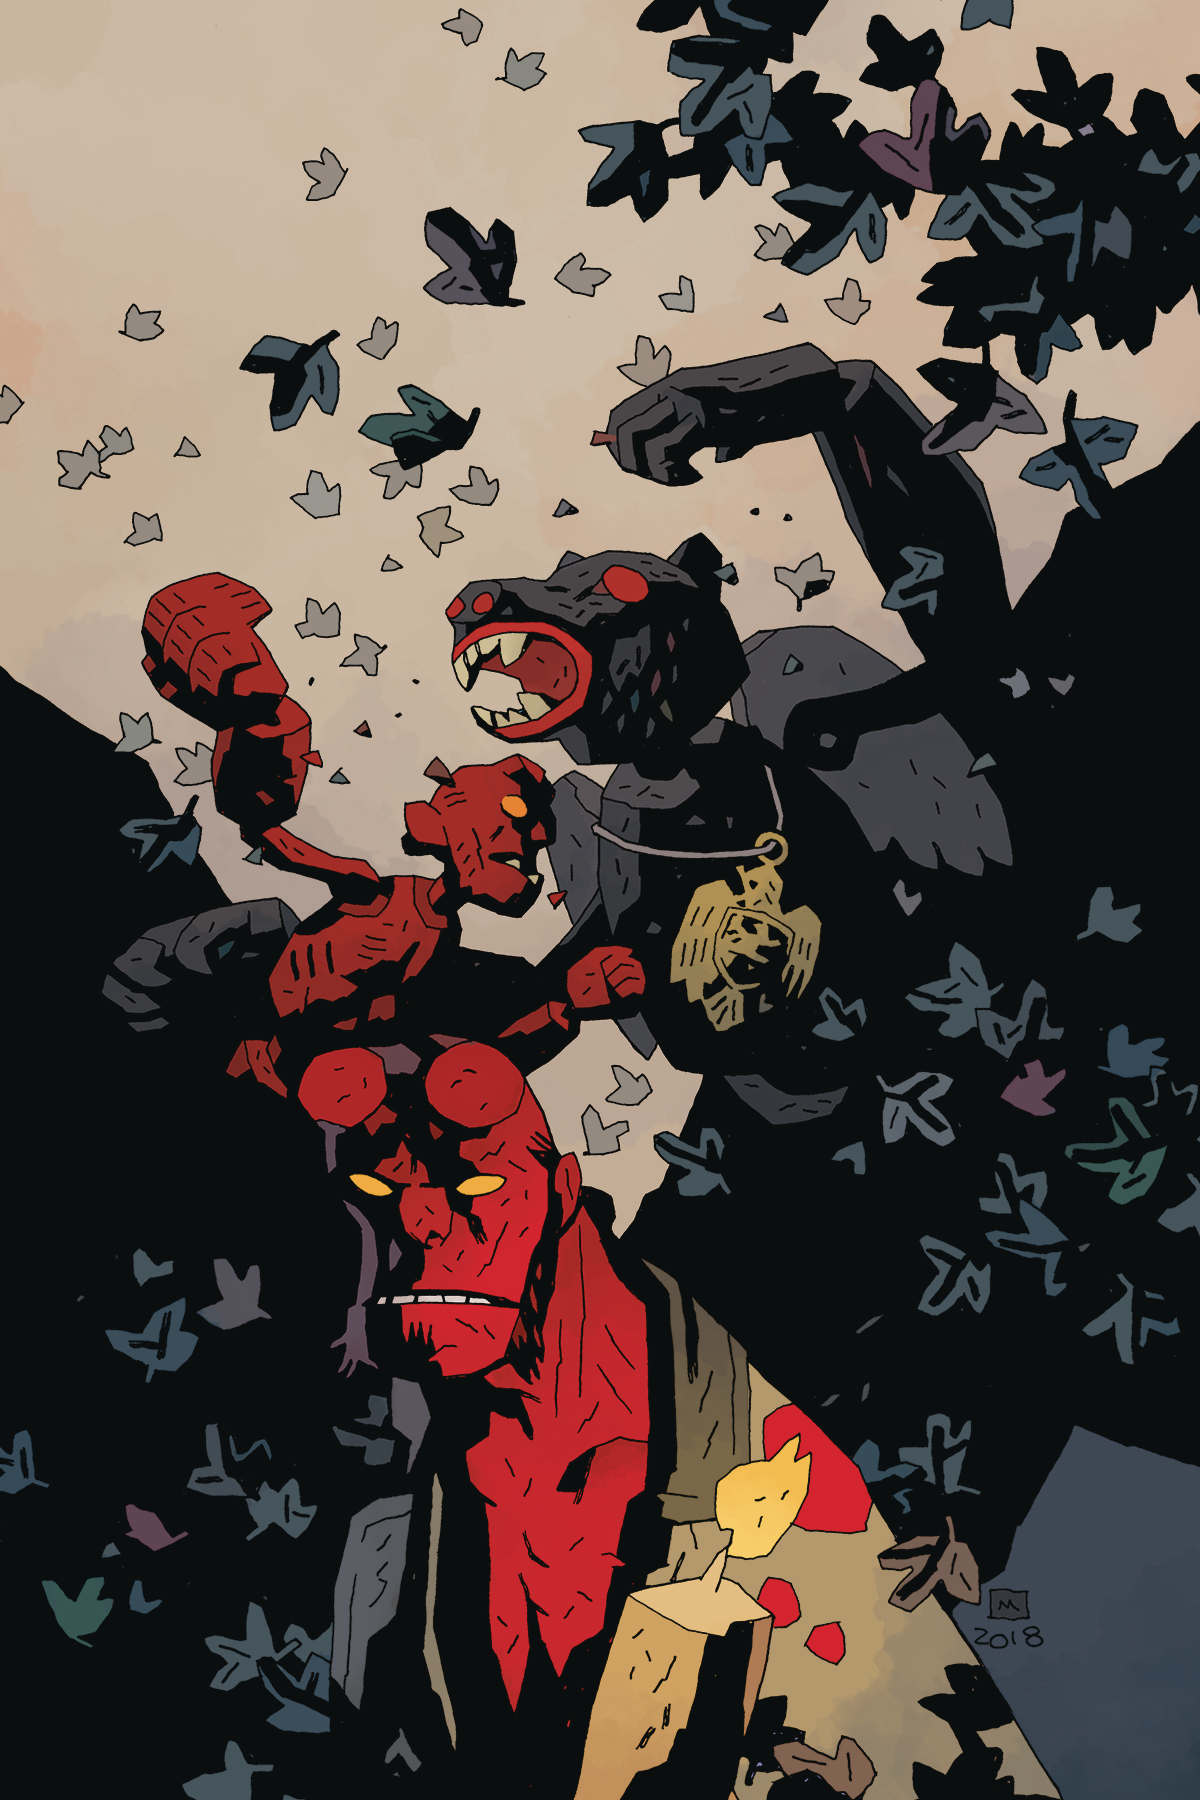 Hellboy and the BPRD - The Beast of Vargu  is out now.